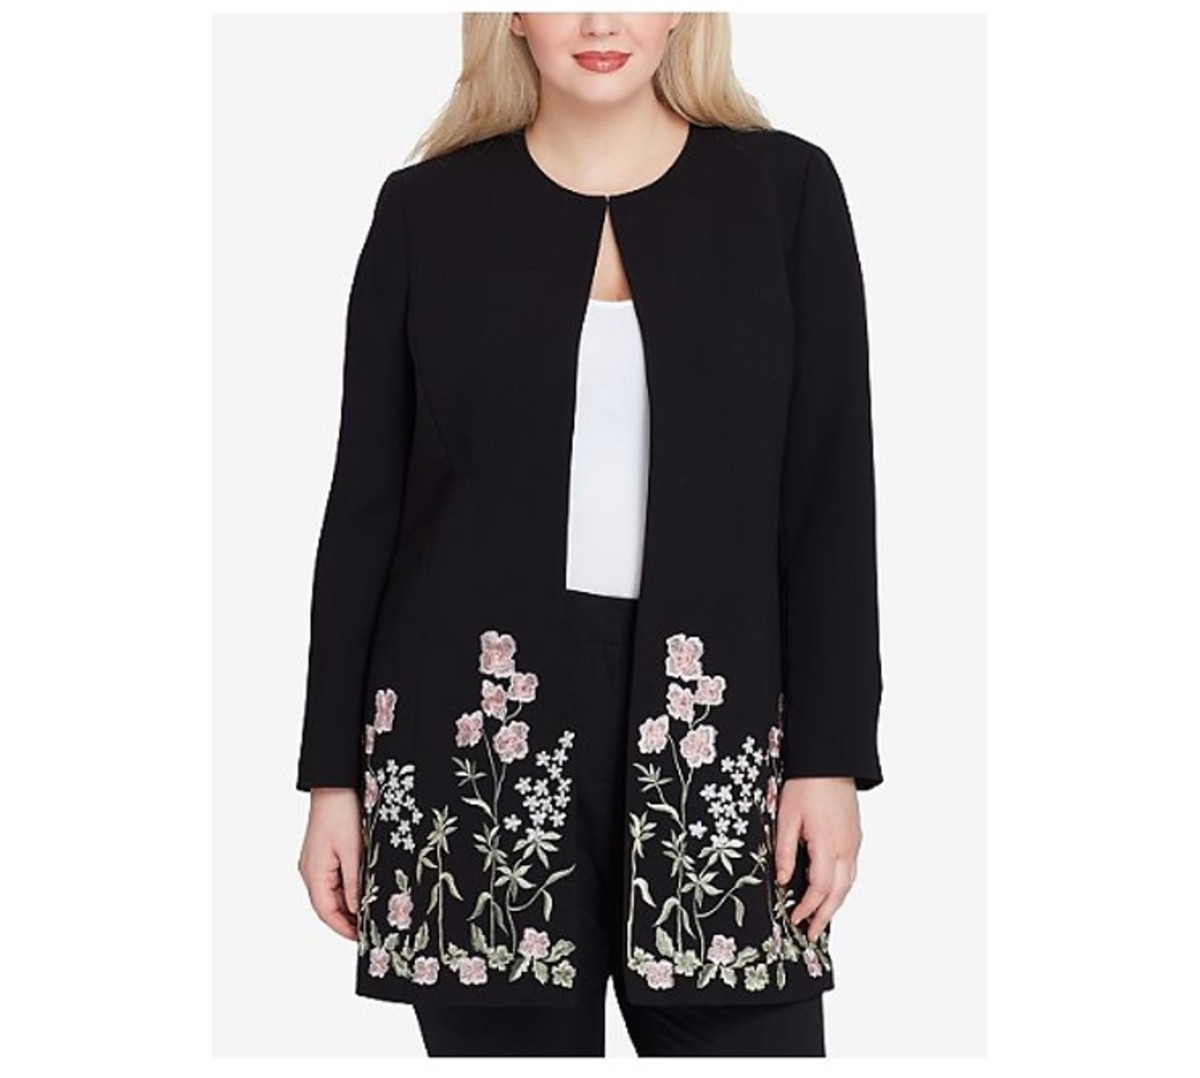 topper jacket with elongated hem, floral embroidery at front